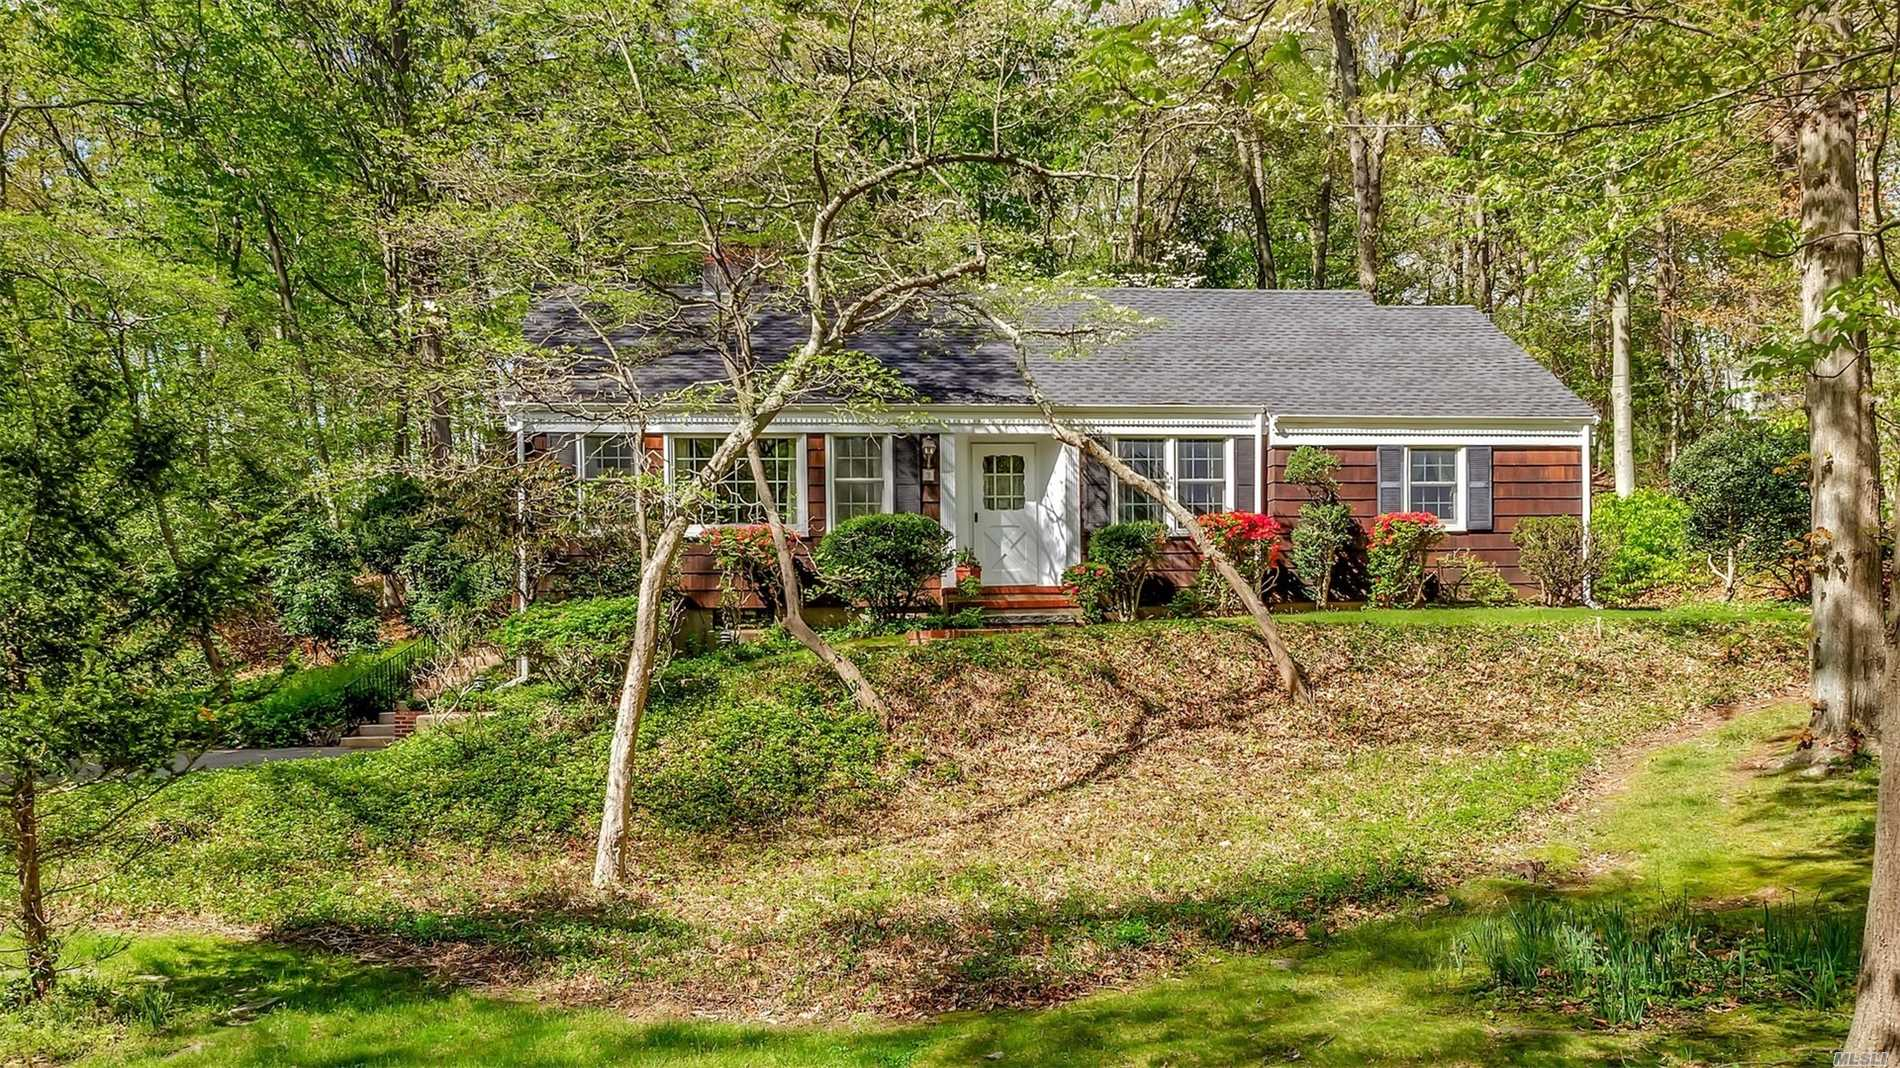 Location, Location, Location! Beautifully Maintained 3-Bedroom Ranch On Over An Acre Of Property And Nestled Between SBU And Historic Stony Brook Village. Wood Floors Throughout, Newer Windows And Roof, Kitchen With Granite Countertops And Paneled Appliances, Updated Heating And Electrical Systems. 0.5 Mile To RR Station And University. Near Stony Brook Harbor, Avalon Park, Village Shops, And A Variety Of Eateries. Prime Location!